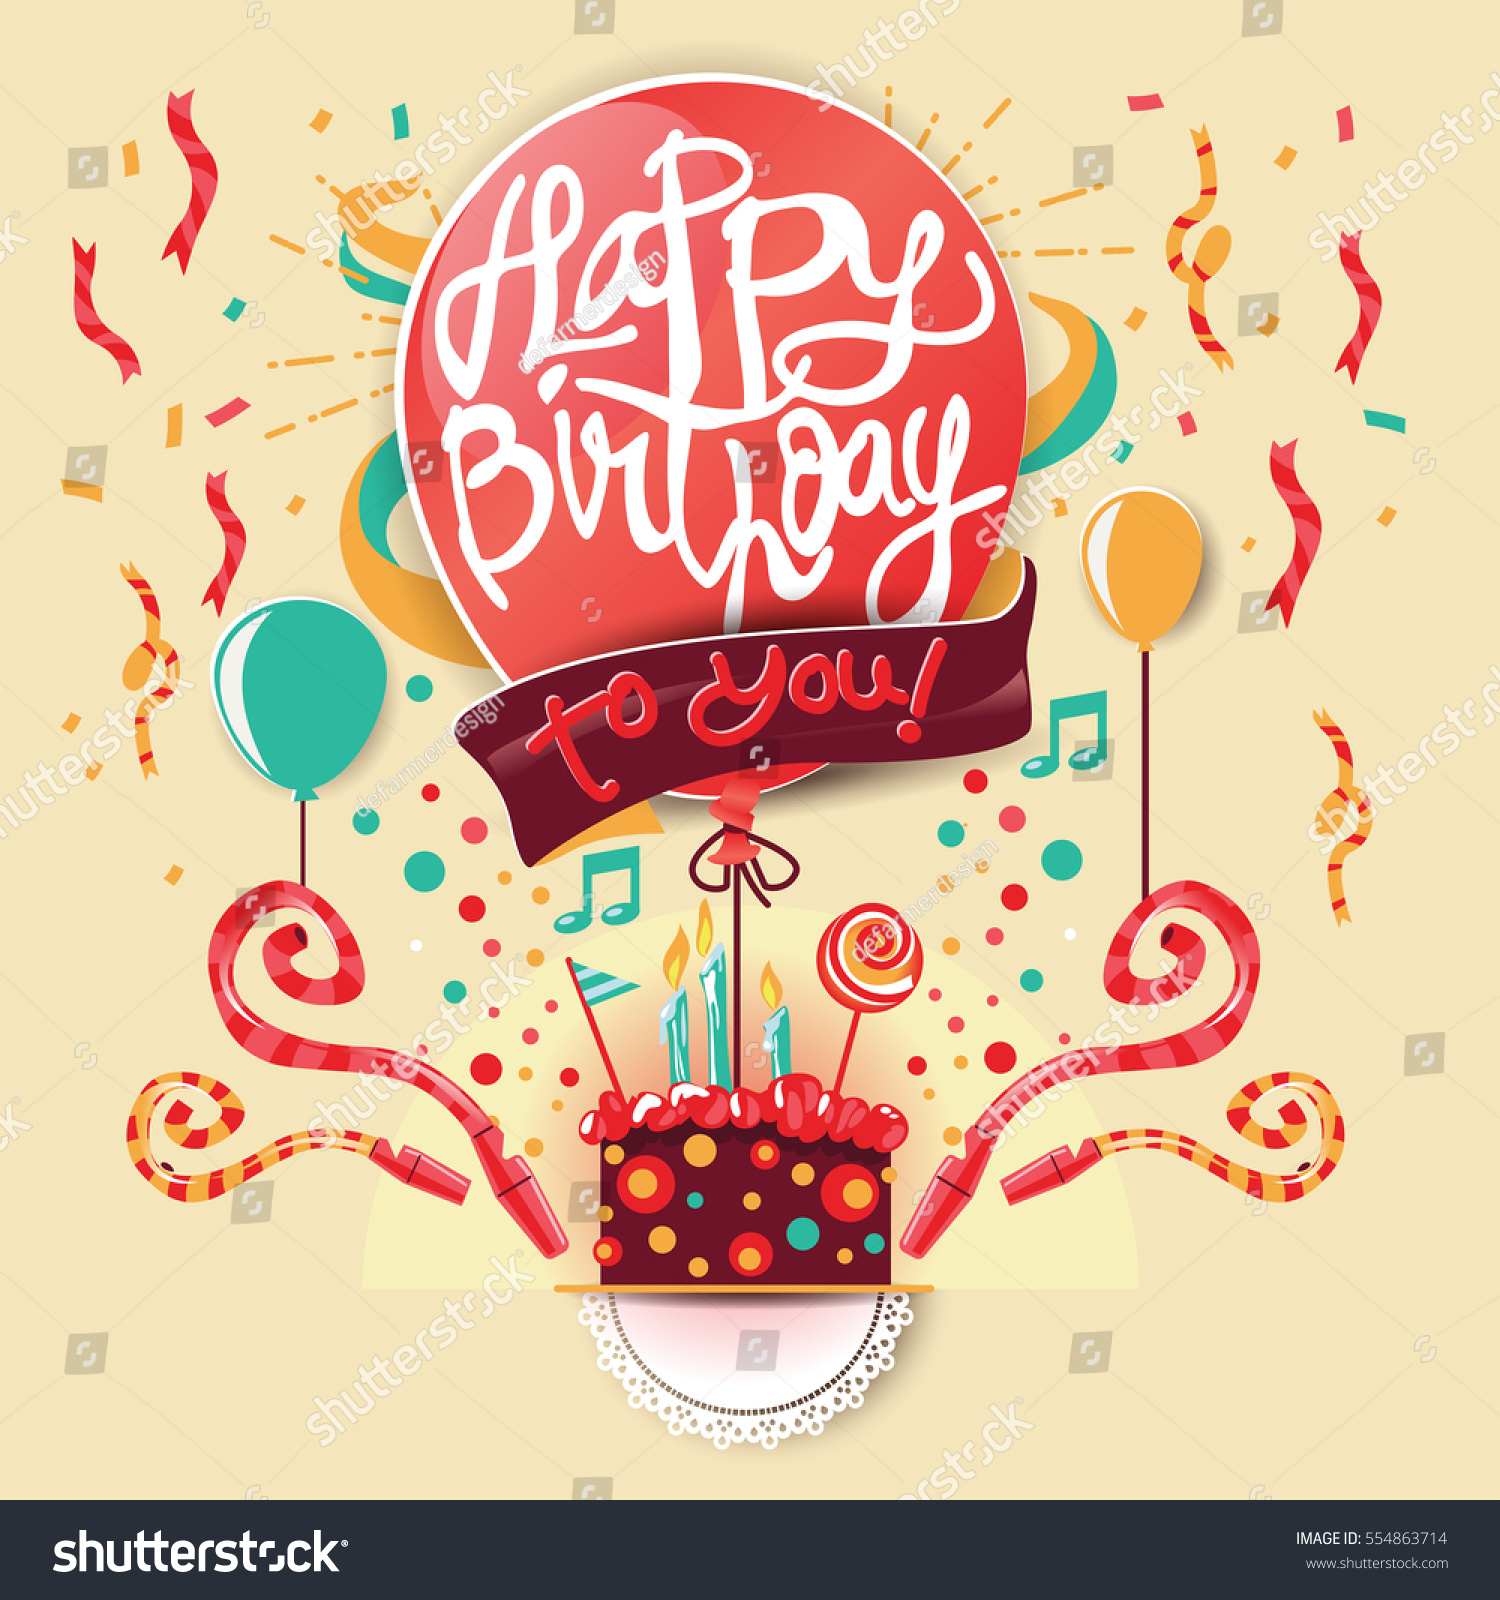 Birthday Greeting Cards Design Vector 554863714 Shutterstock – Birthday Greeting Cards Images